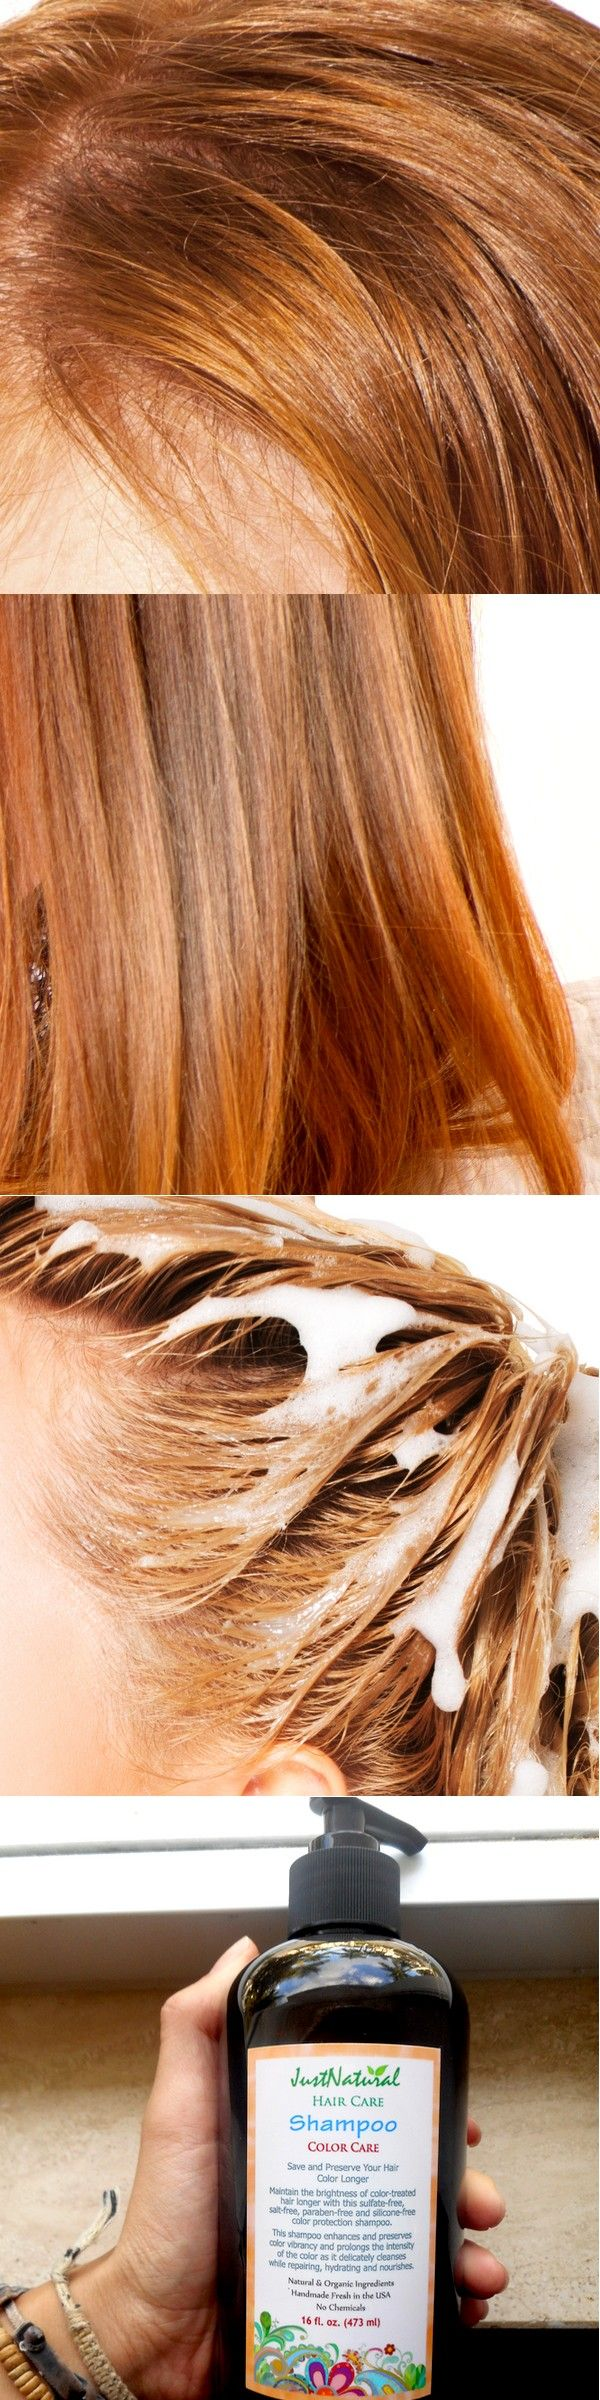 99 Best Hairstyles Over 50 Images On Pinterest Beauty